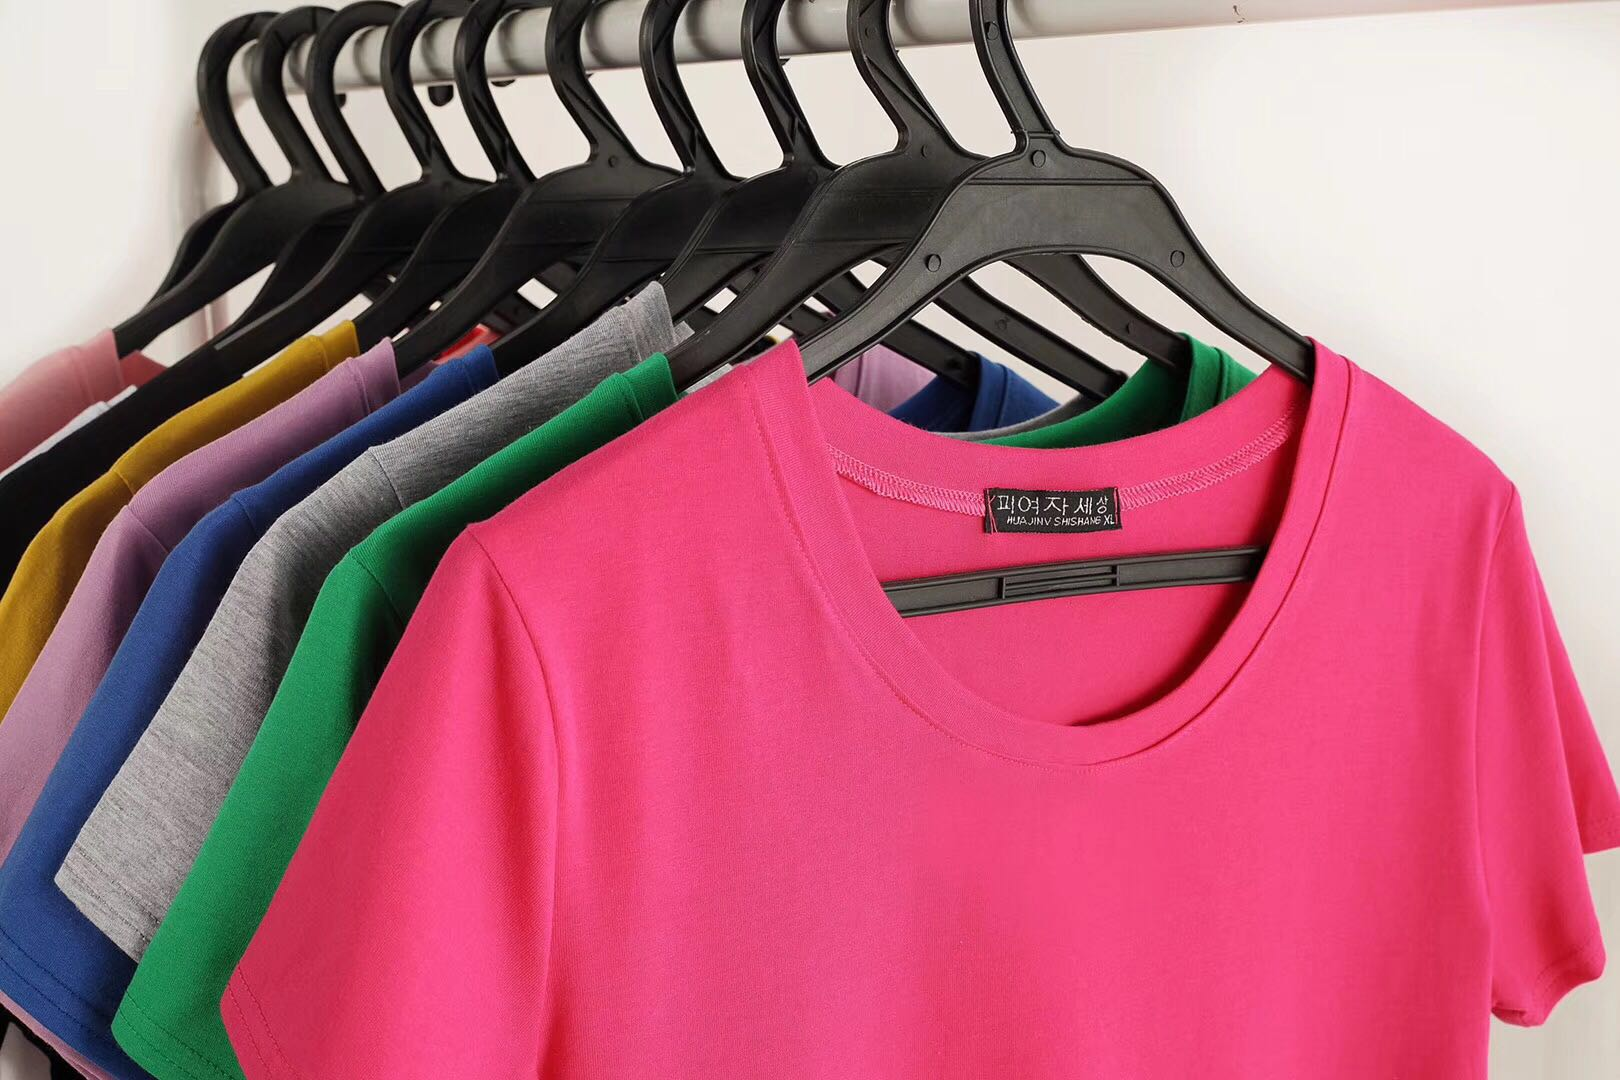 new concept 100% genuine matching in colour Ordering Wholesale Blank T-Shirts from China | Business in ...